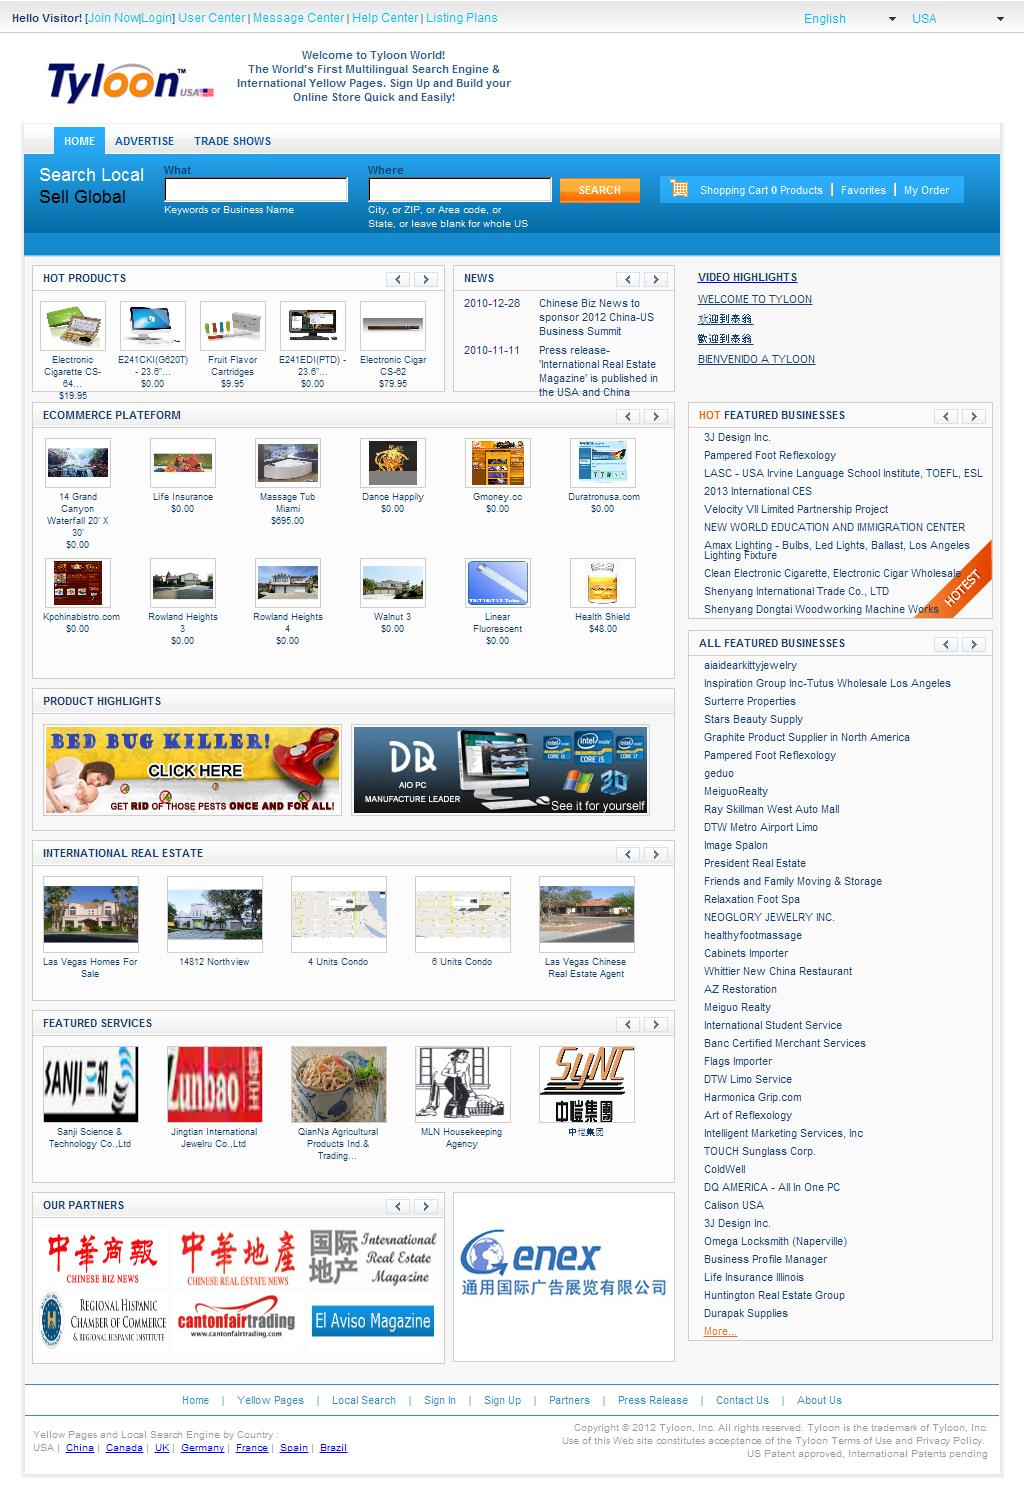 International yellow pages, multilingual local search engine, world business directory & unified e-commerce platform - Tyloon.com